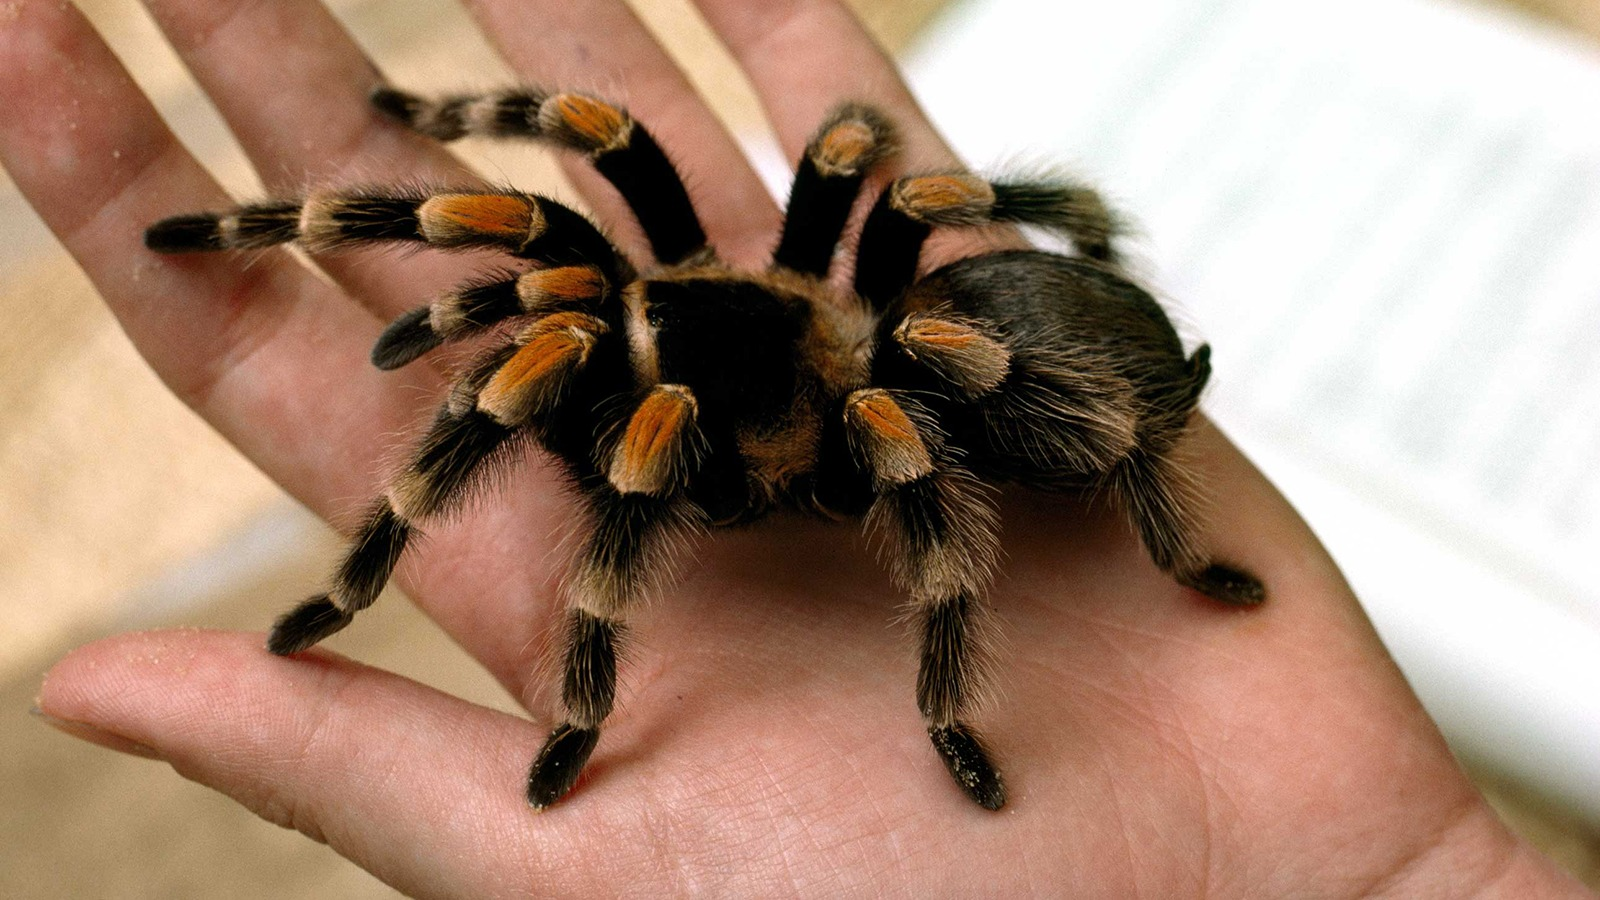 tarantula-closeup-hand - Copy